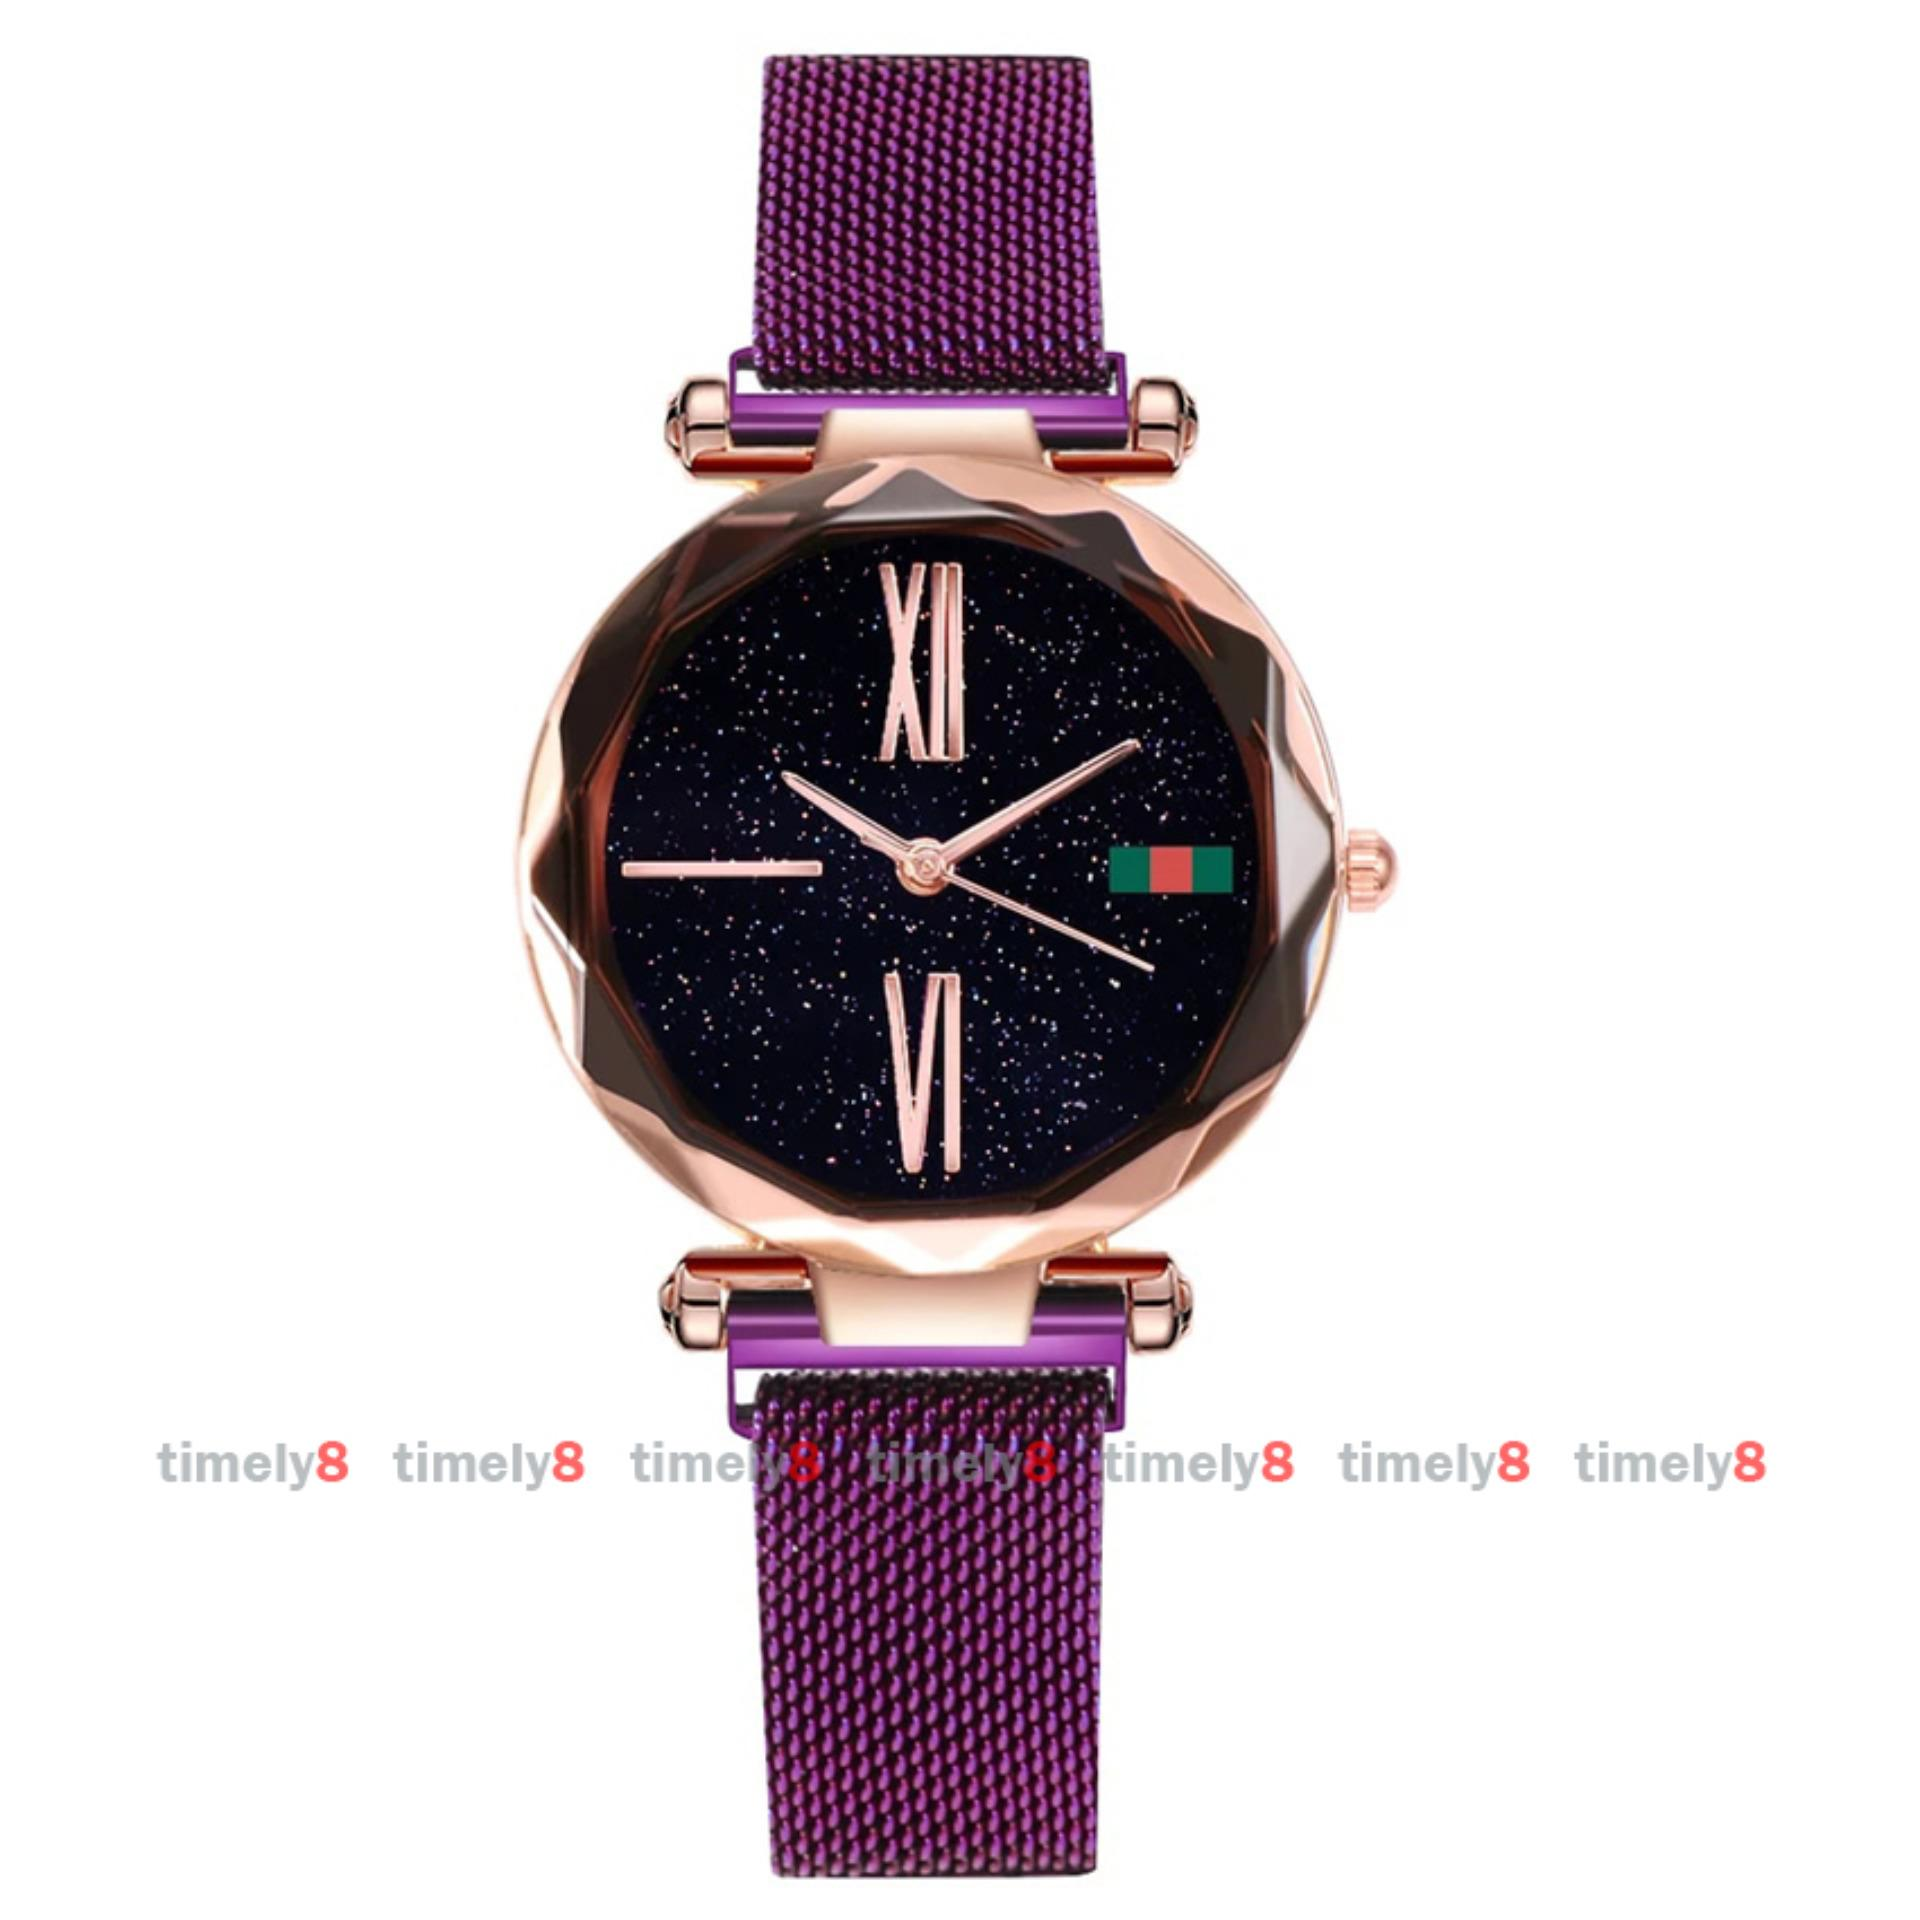 Timely - Women Luxury Magnet Buckle Watch MG909 - Jam Tangan Fashion - Jam  Tangan Magnet 0331e59351